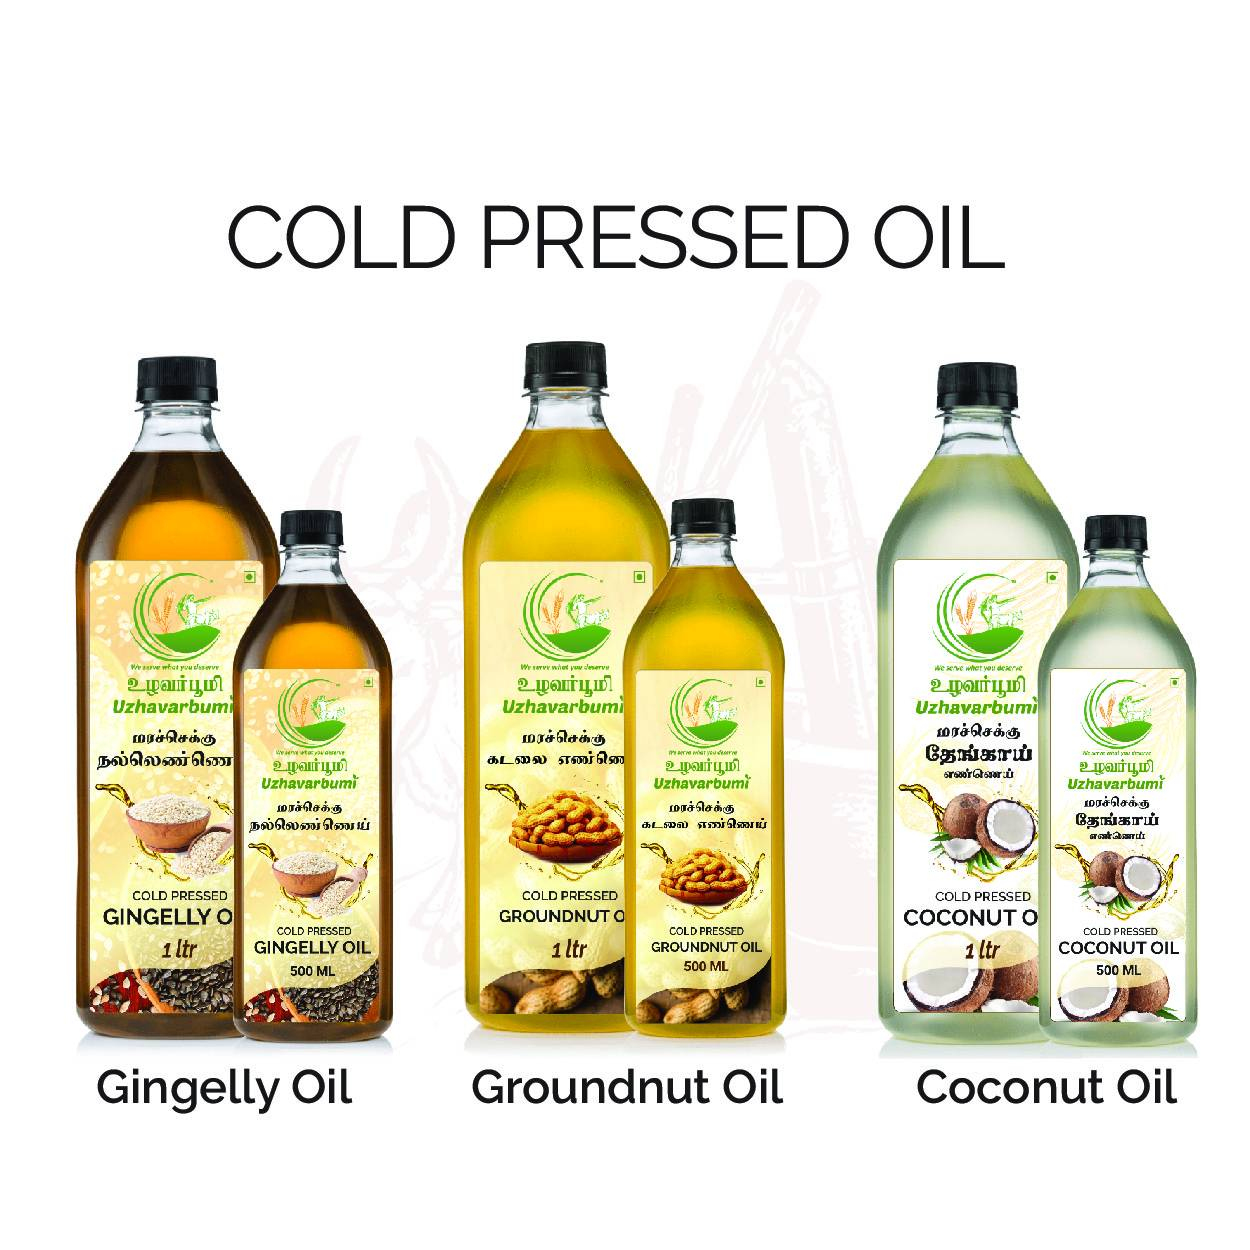 UzhavarBumi's Cold Pressed Oil